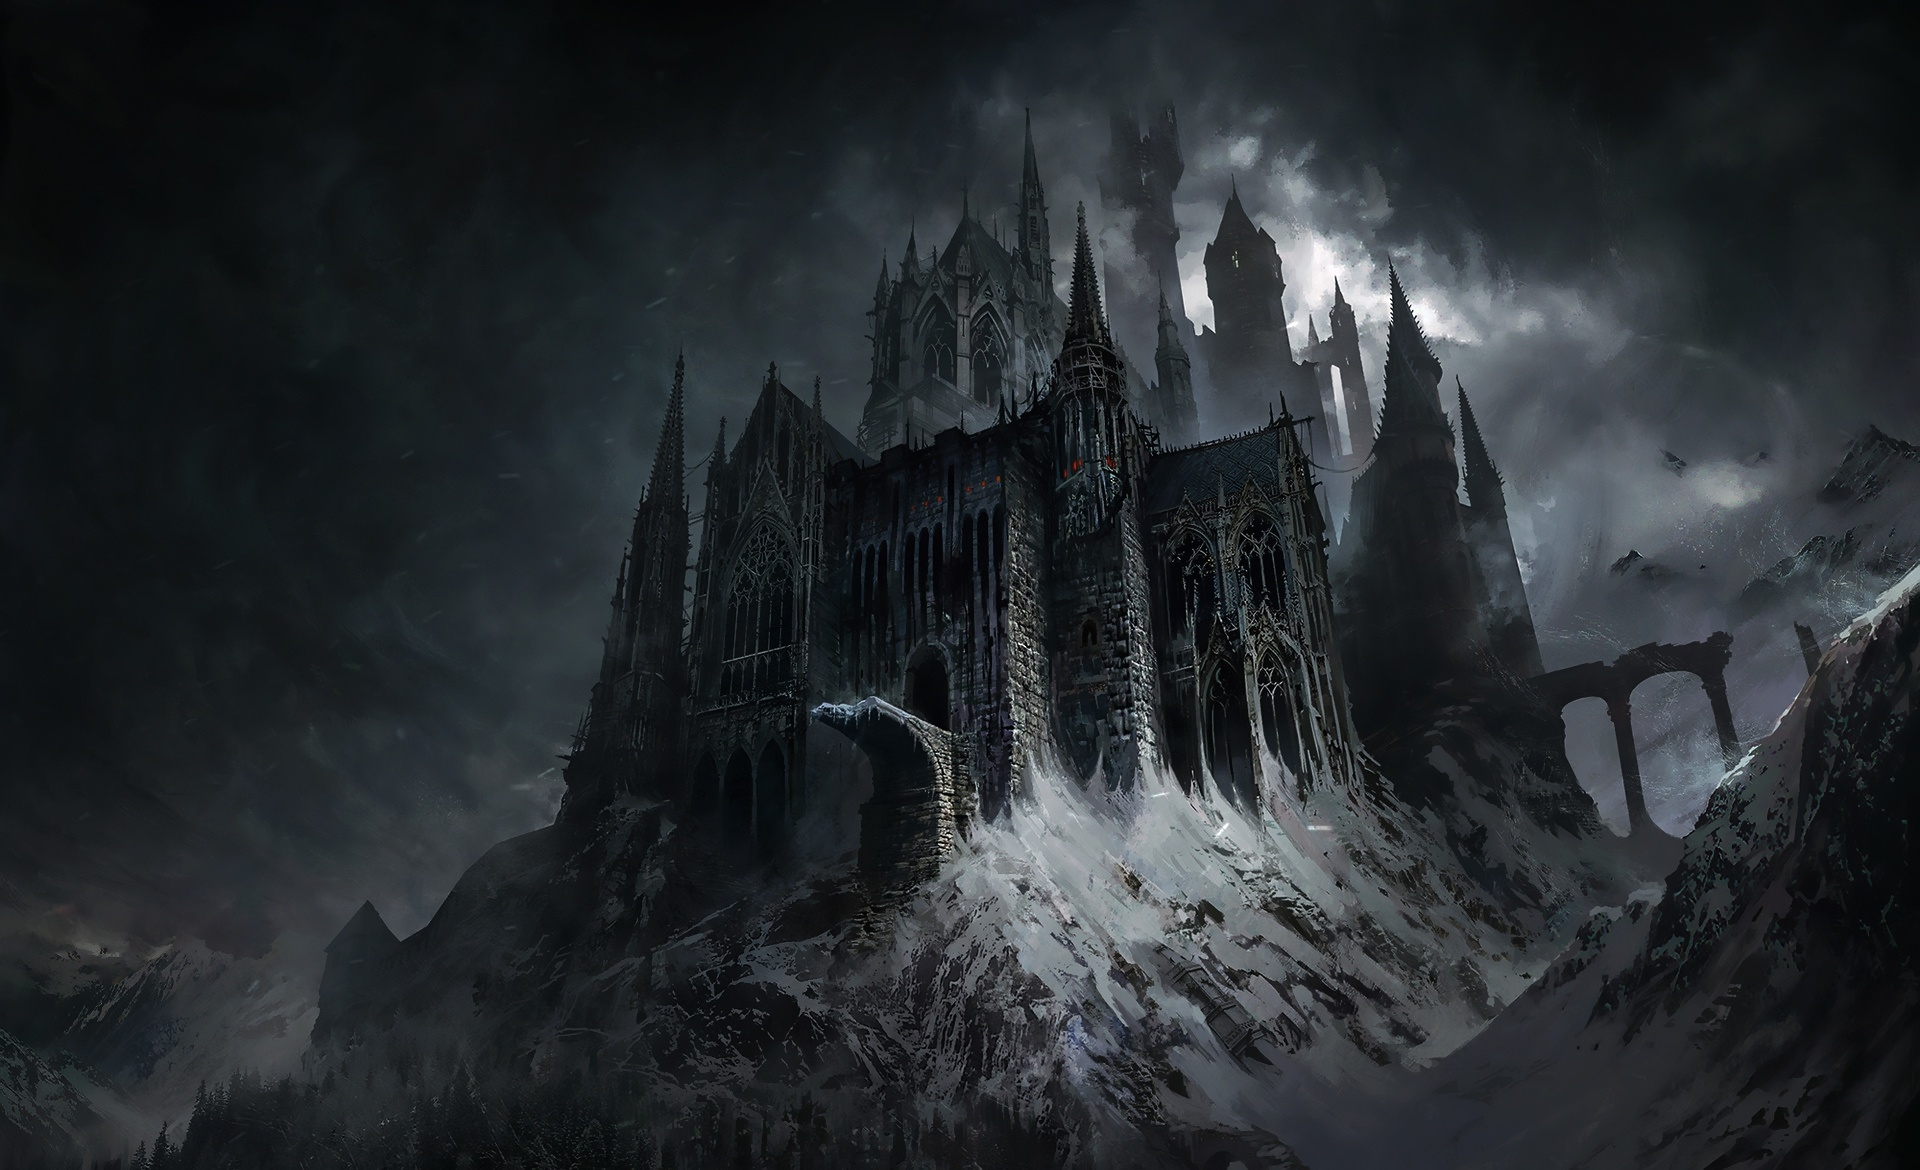 Evil Castle Dark Fantasy Wallpaper Hd Fantasy 4k Wallpapers